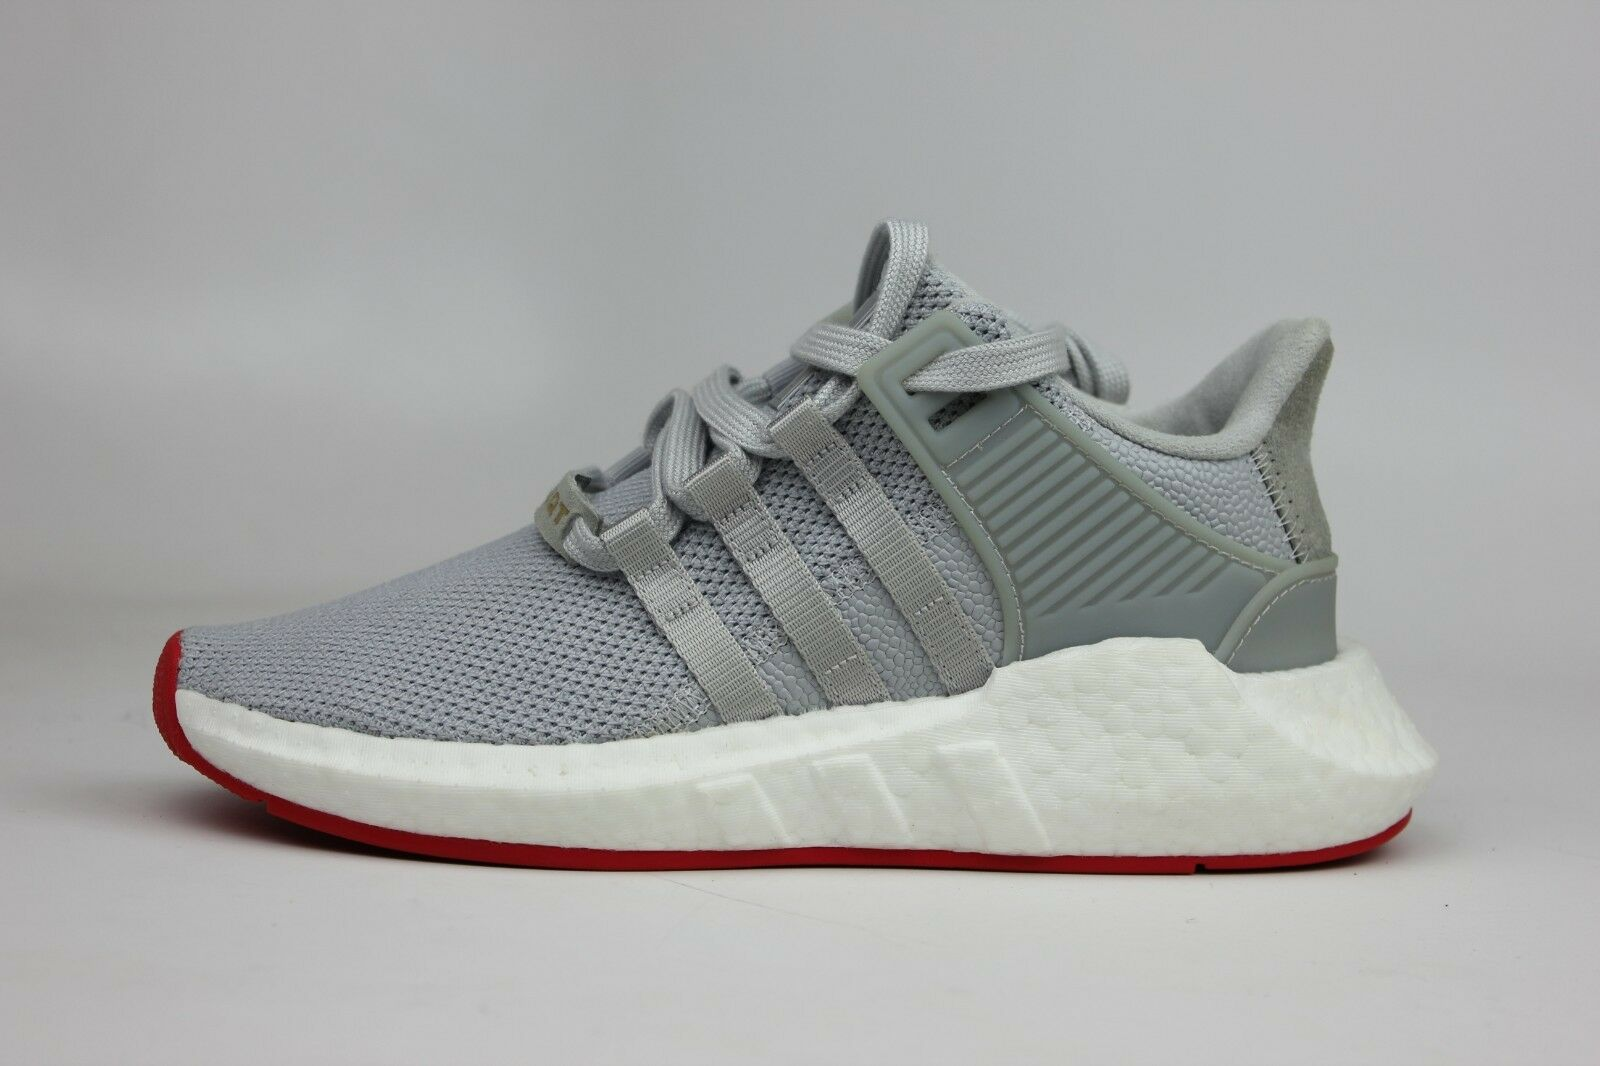 ADIDAS ORIGINALS EQT SUPPORT 93/17 BOOST LIGHT CQ2393 GREY RED MENS SNEAKERS CQ2393 LIGHT f9fff5